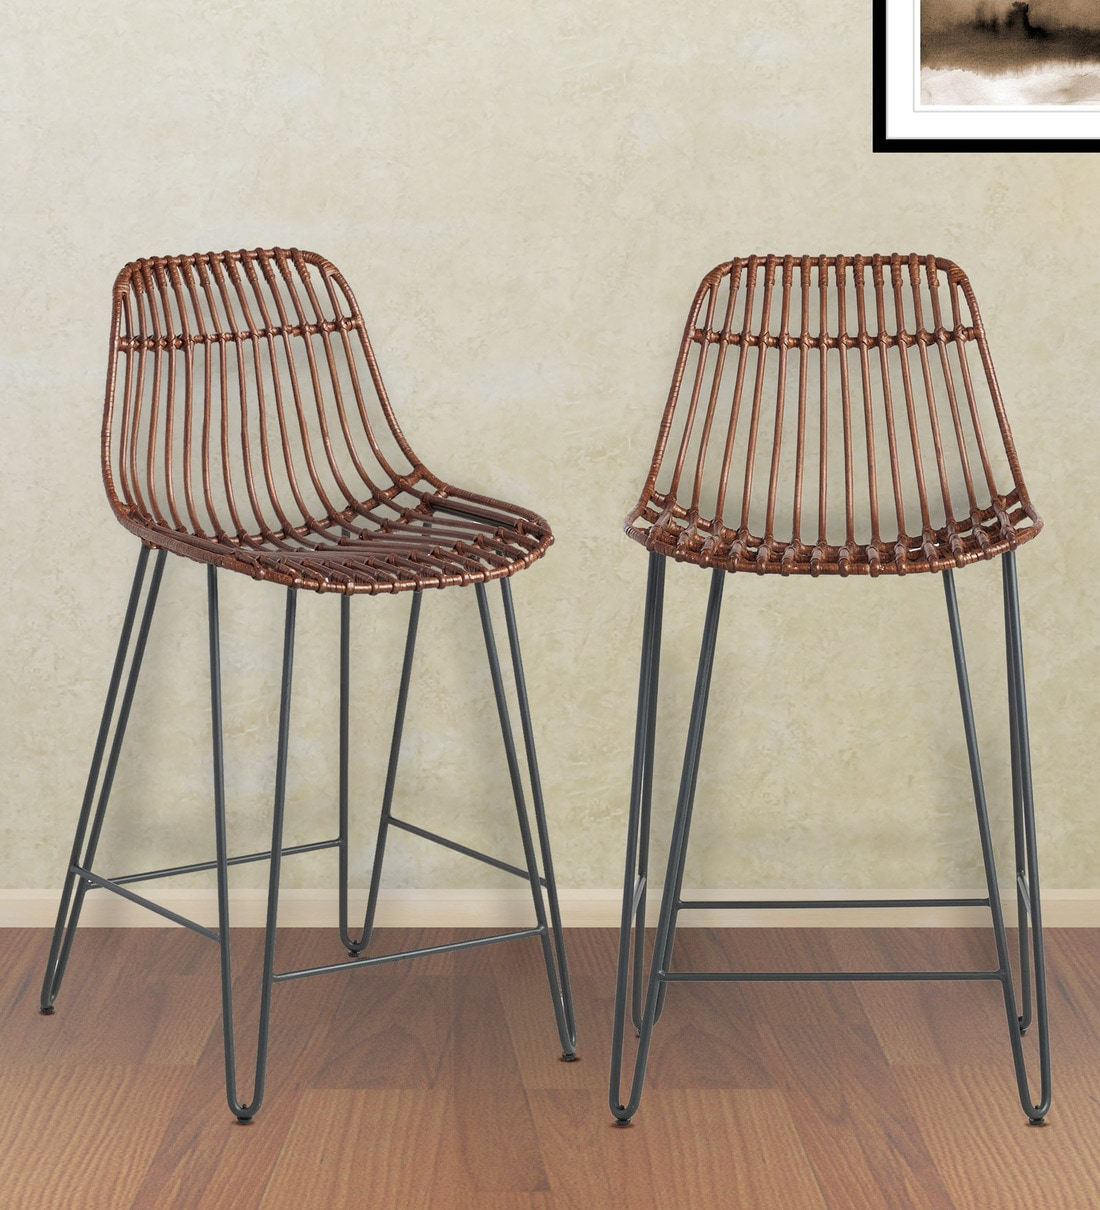 Buy Flynn Hairpin Counter Stools Set Of 2 In Espresso By Twigs Direct Online Industrial Bar Stools Bar Furniture Furniture Pepperfry Product